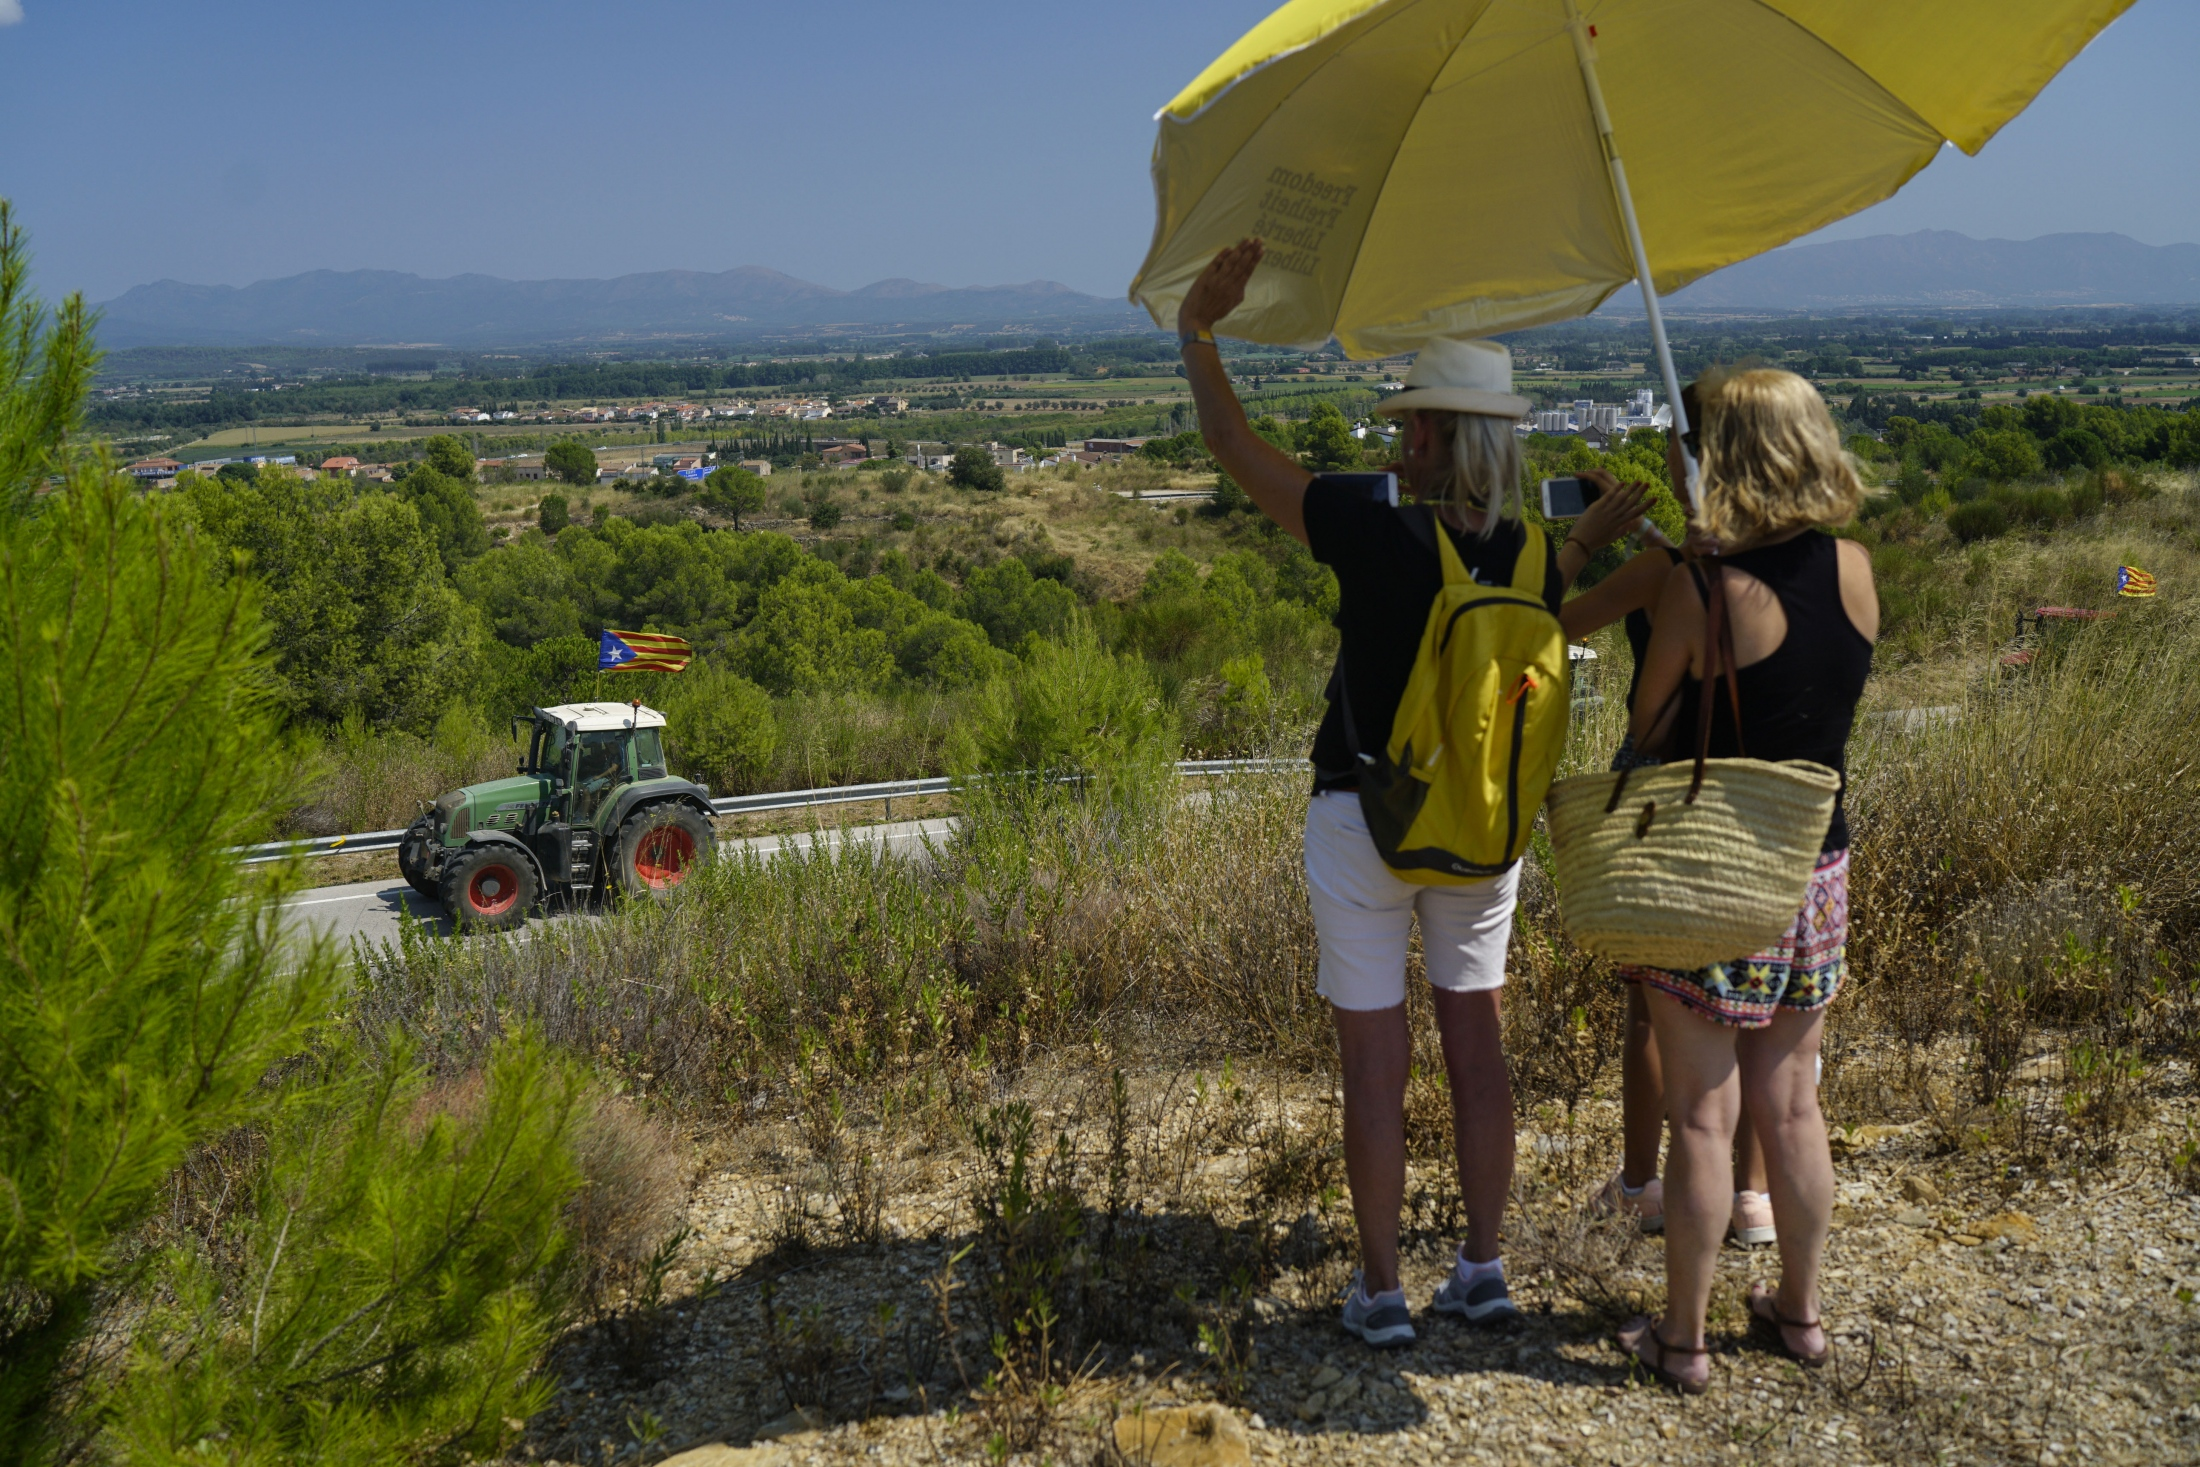 A tractor caravan organized by the Catalan Farmers Union arrives at the Puix de les Basses prison where ex-minister Dolors Bassa is held on charges of Rebellion against the Spanish state for her role in organizing the Catalan independence referendum, August 22nd, 2018.